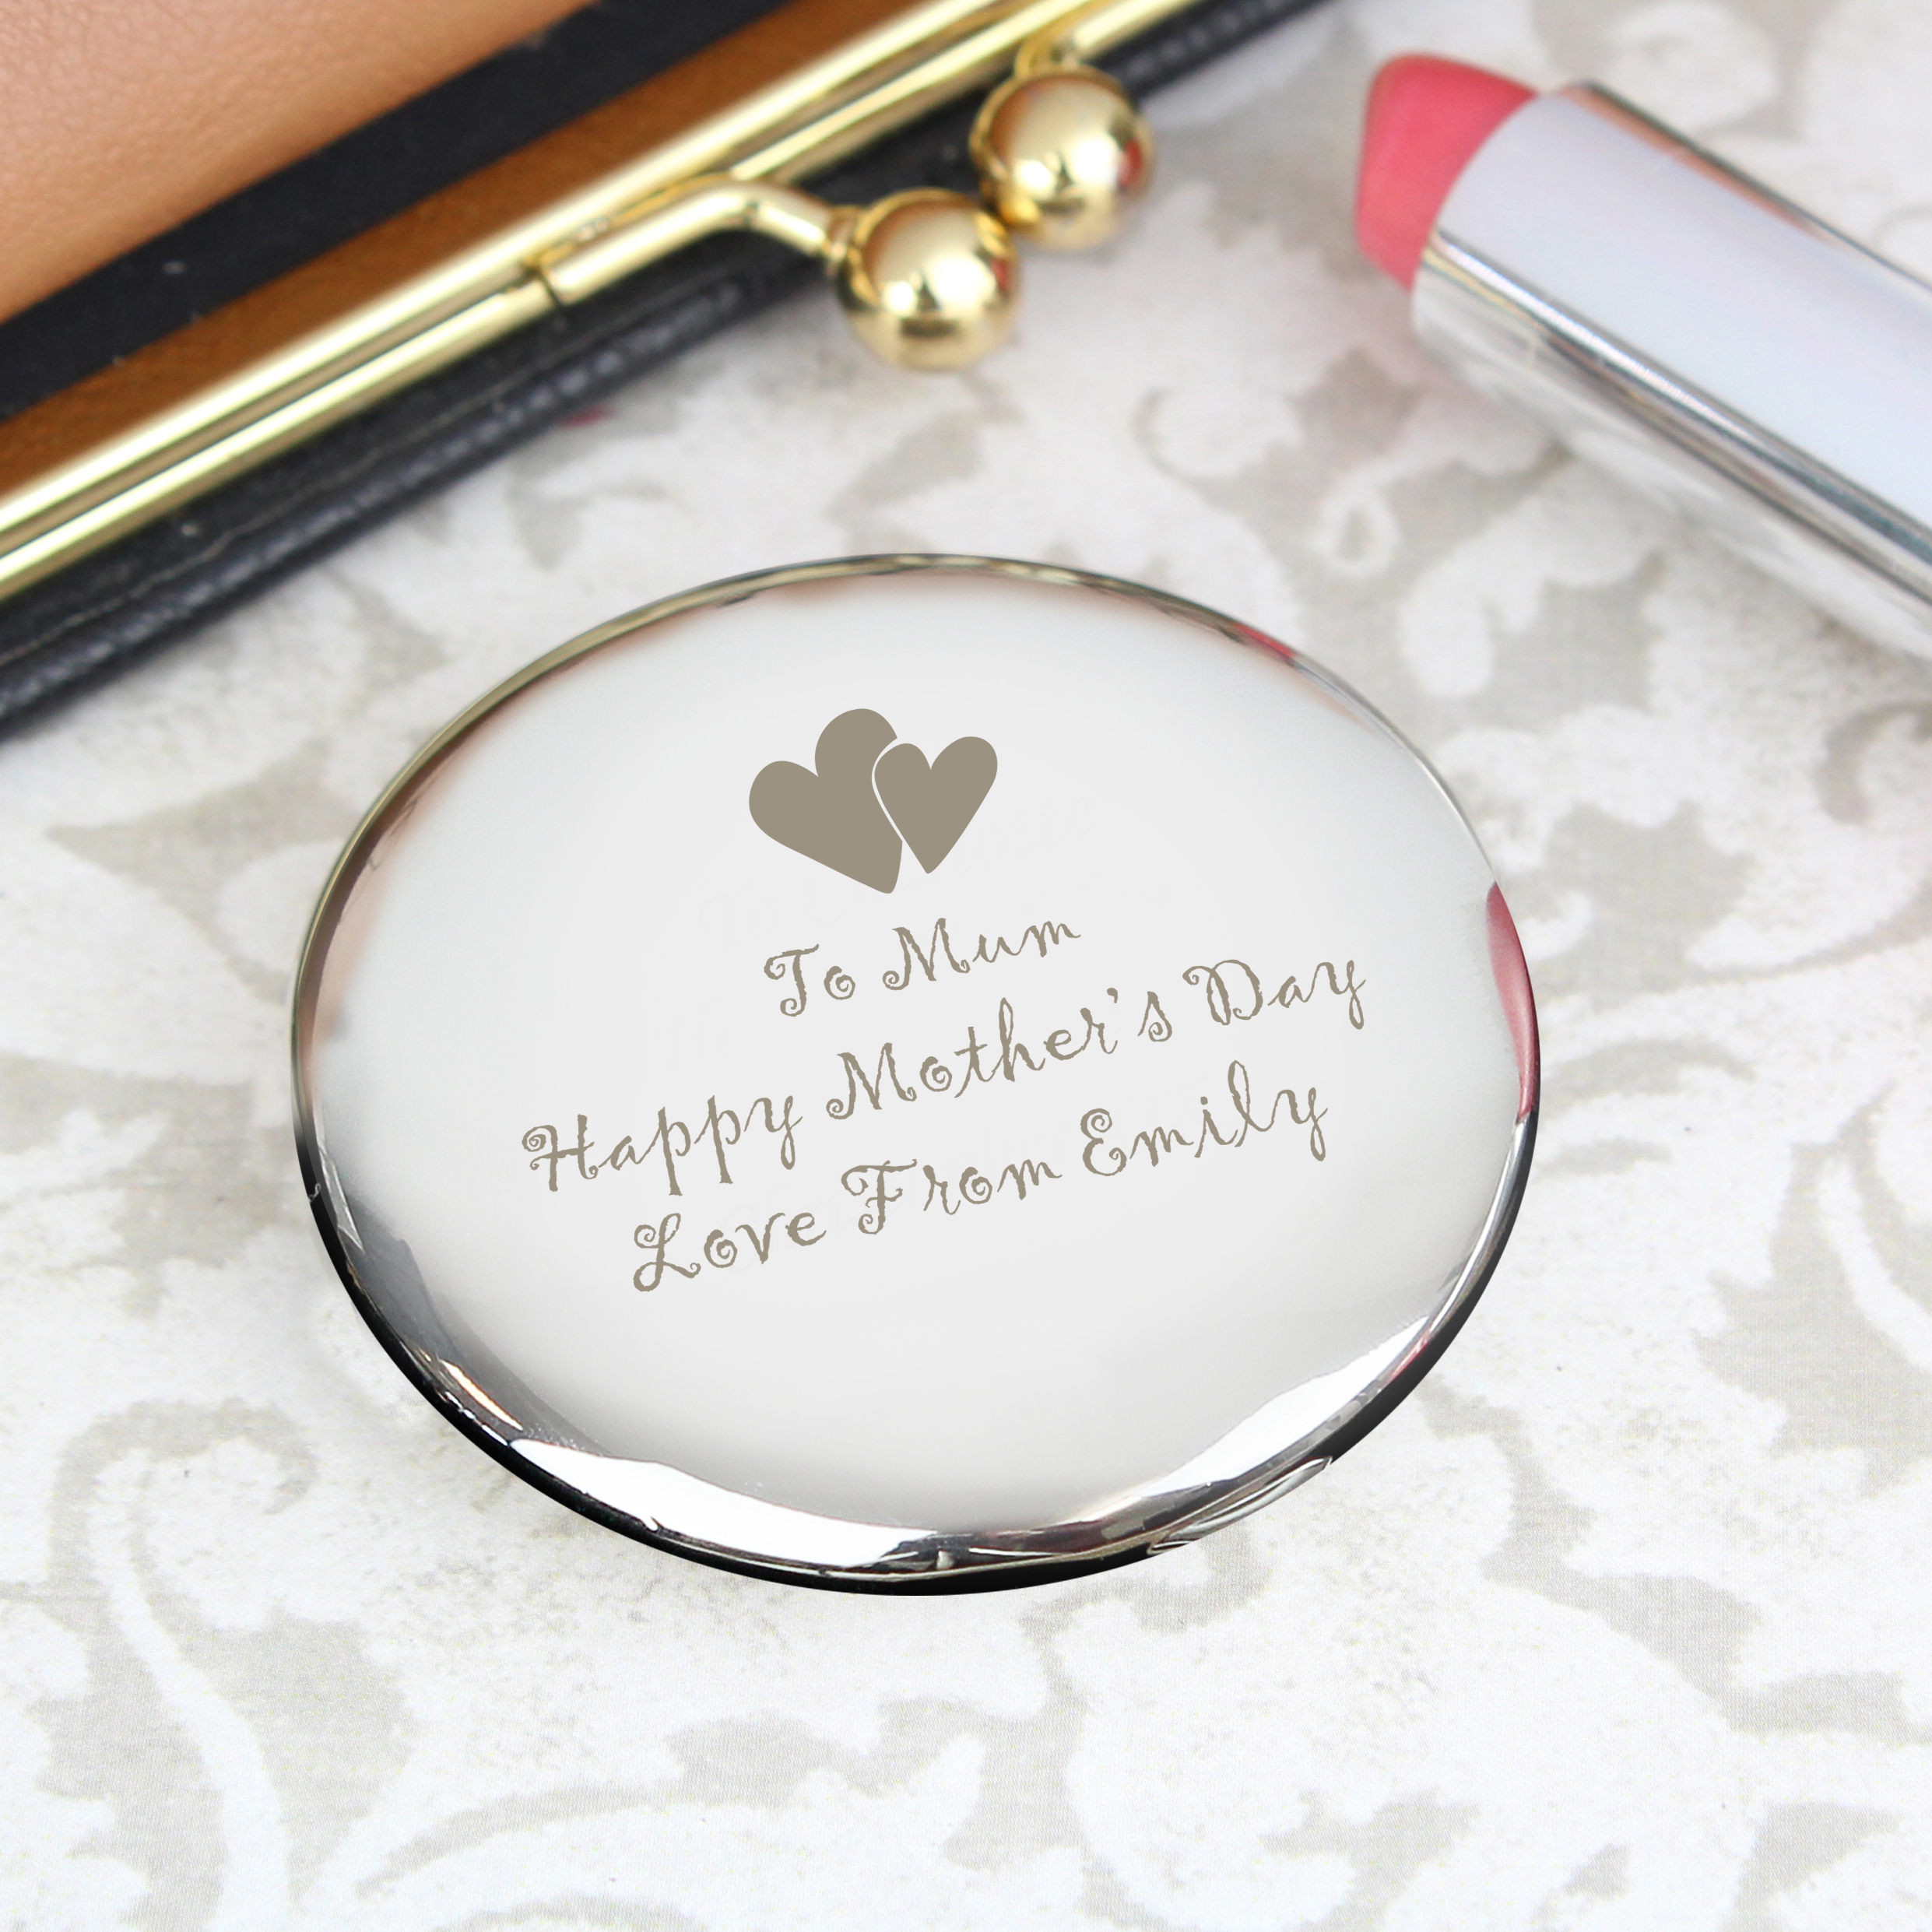 Engraved Round Compact with Heart Motif